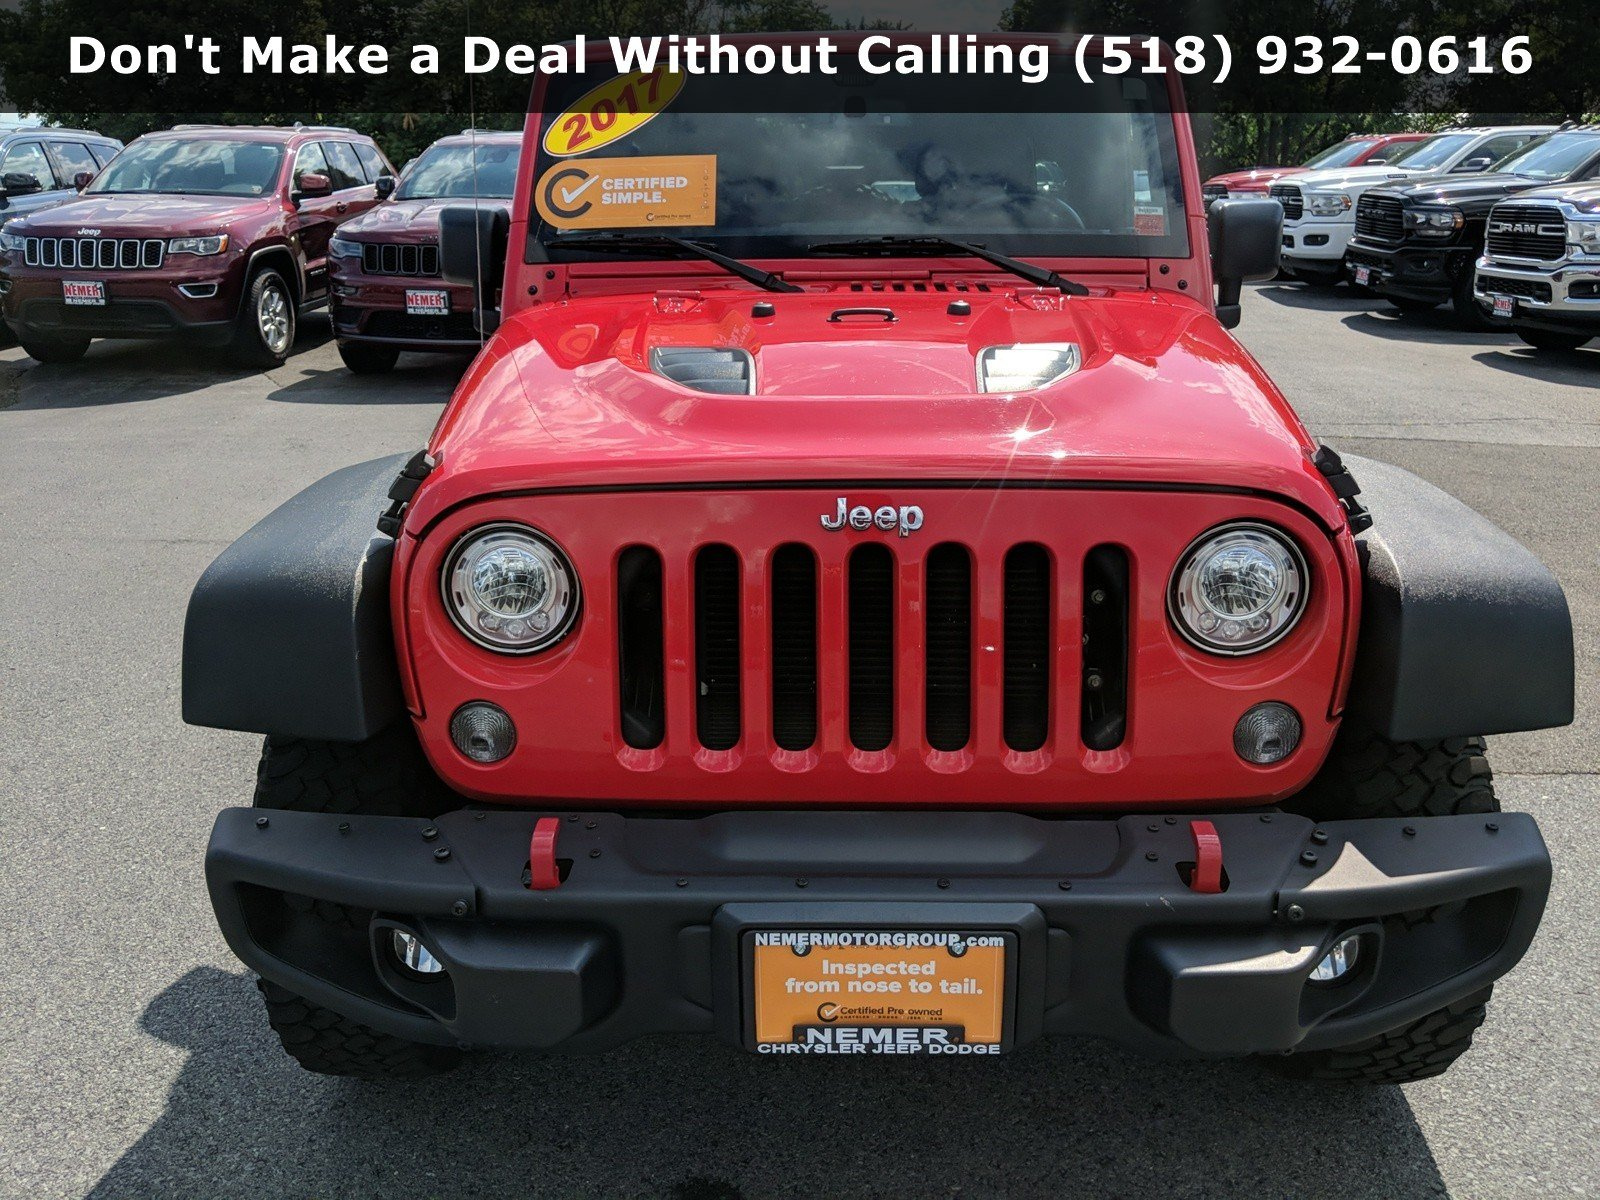 Certified Pre-Owned 2017 Jeep Wrangler Unlimited Rubicon Hard Rock